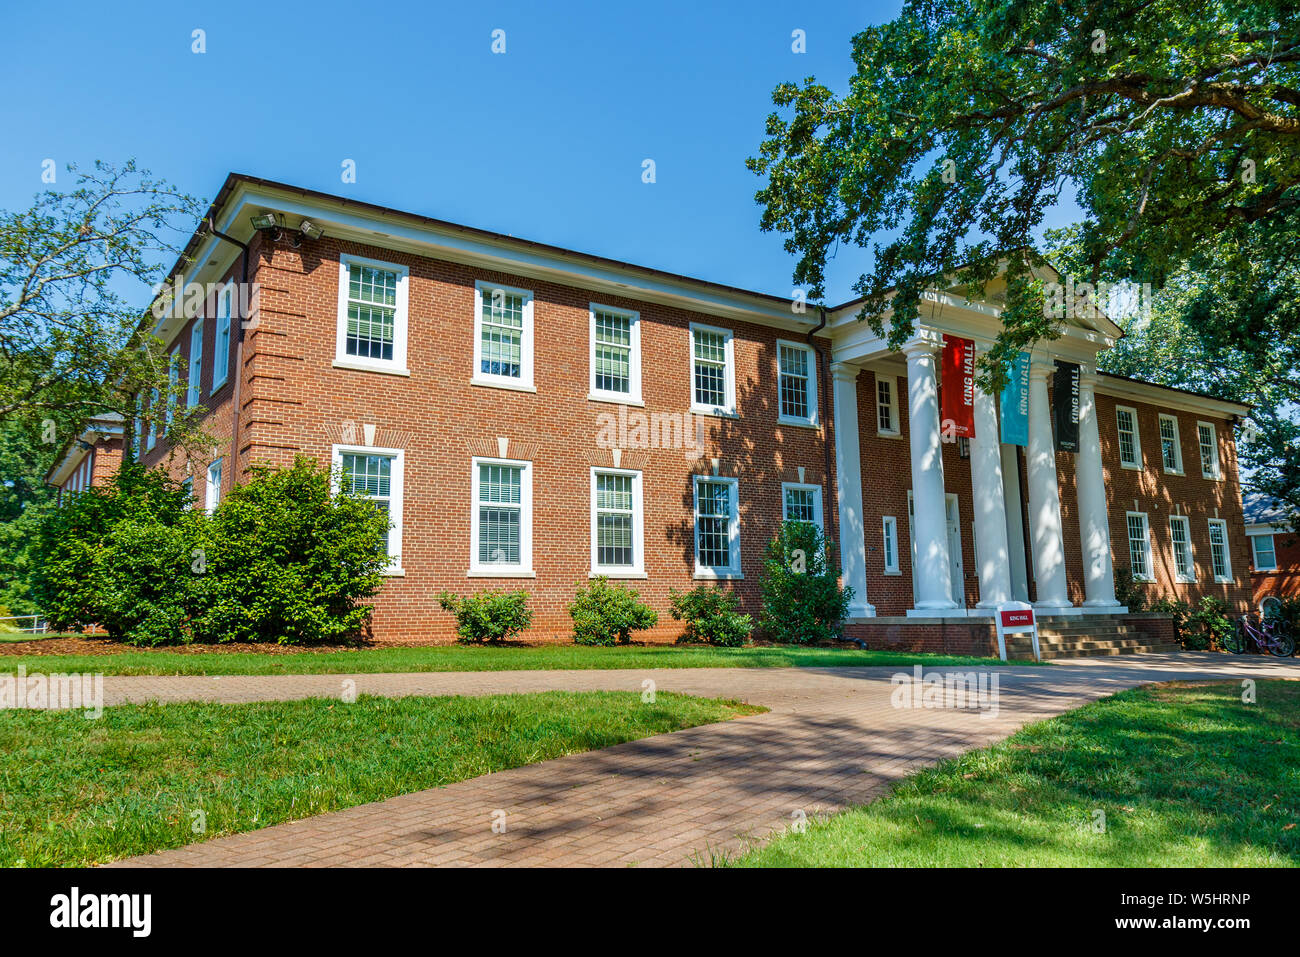 Colleges In Greensboro Nc >> Greensboro Nc Usa July 27 King Hall On July 27 2019 At